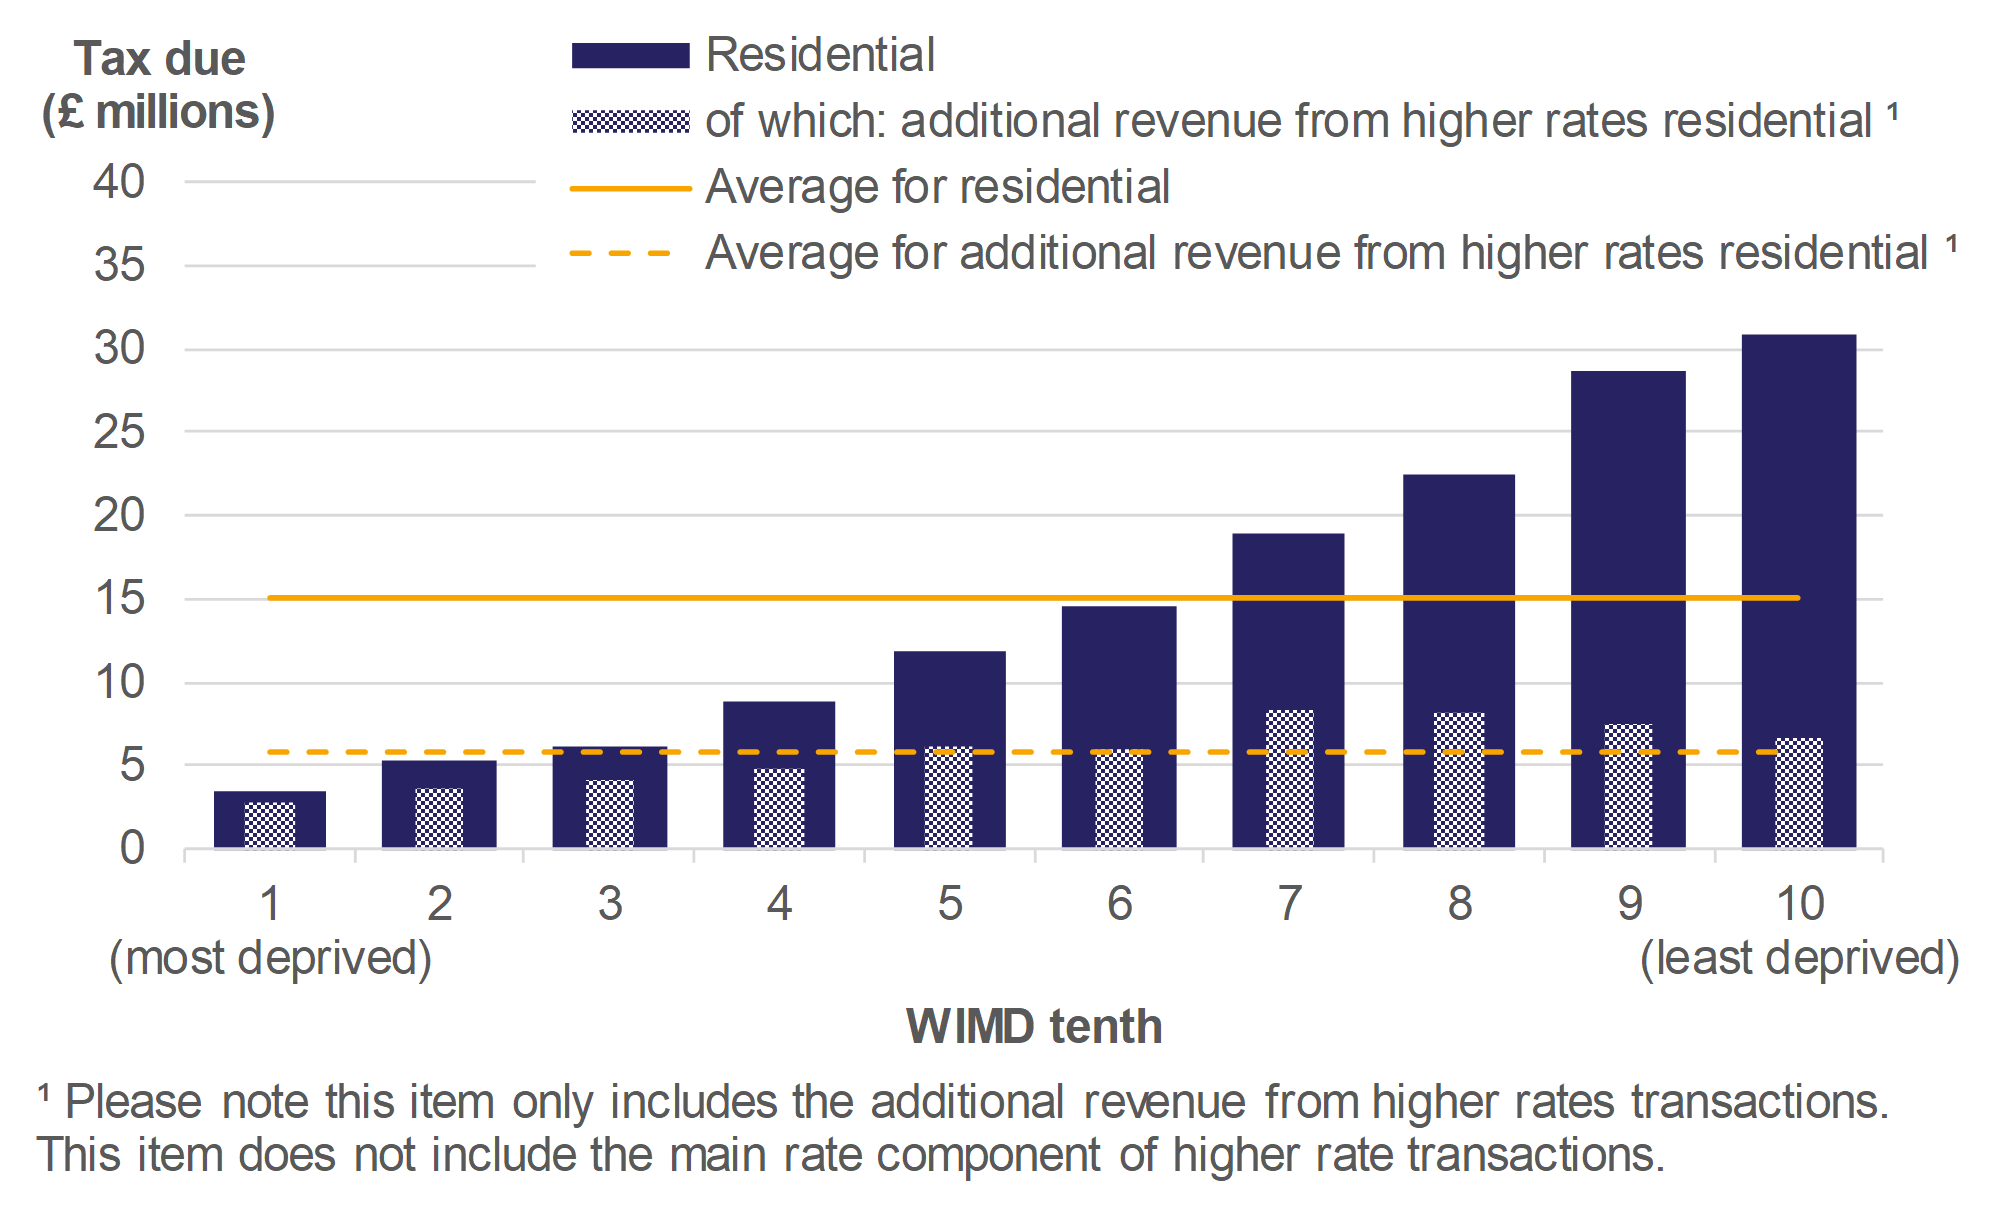 Figure 9.2 shows the amount of tax due on residential transactions and additional revenue from the higher rates, by WIMD tenth, for April 2018 to March 2019. Average values over all WIMD tenths are also presented.